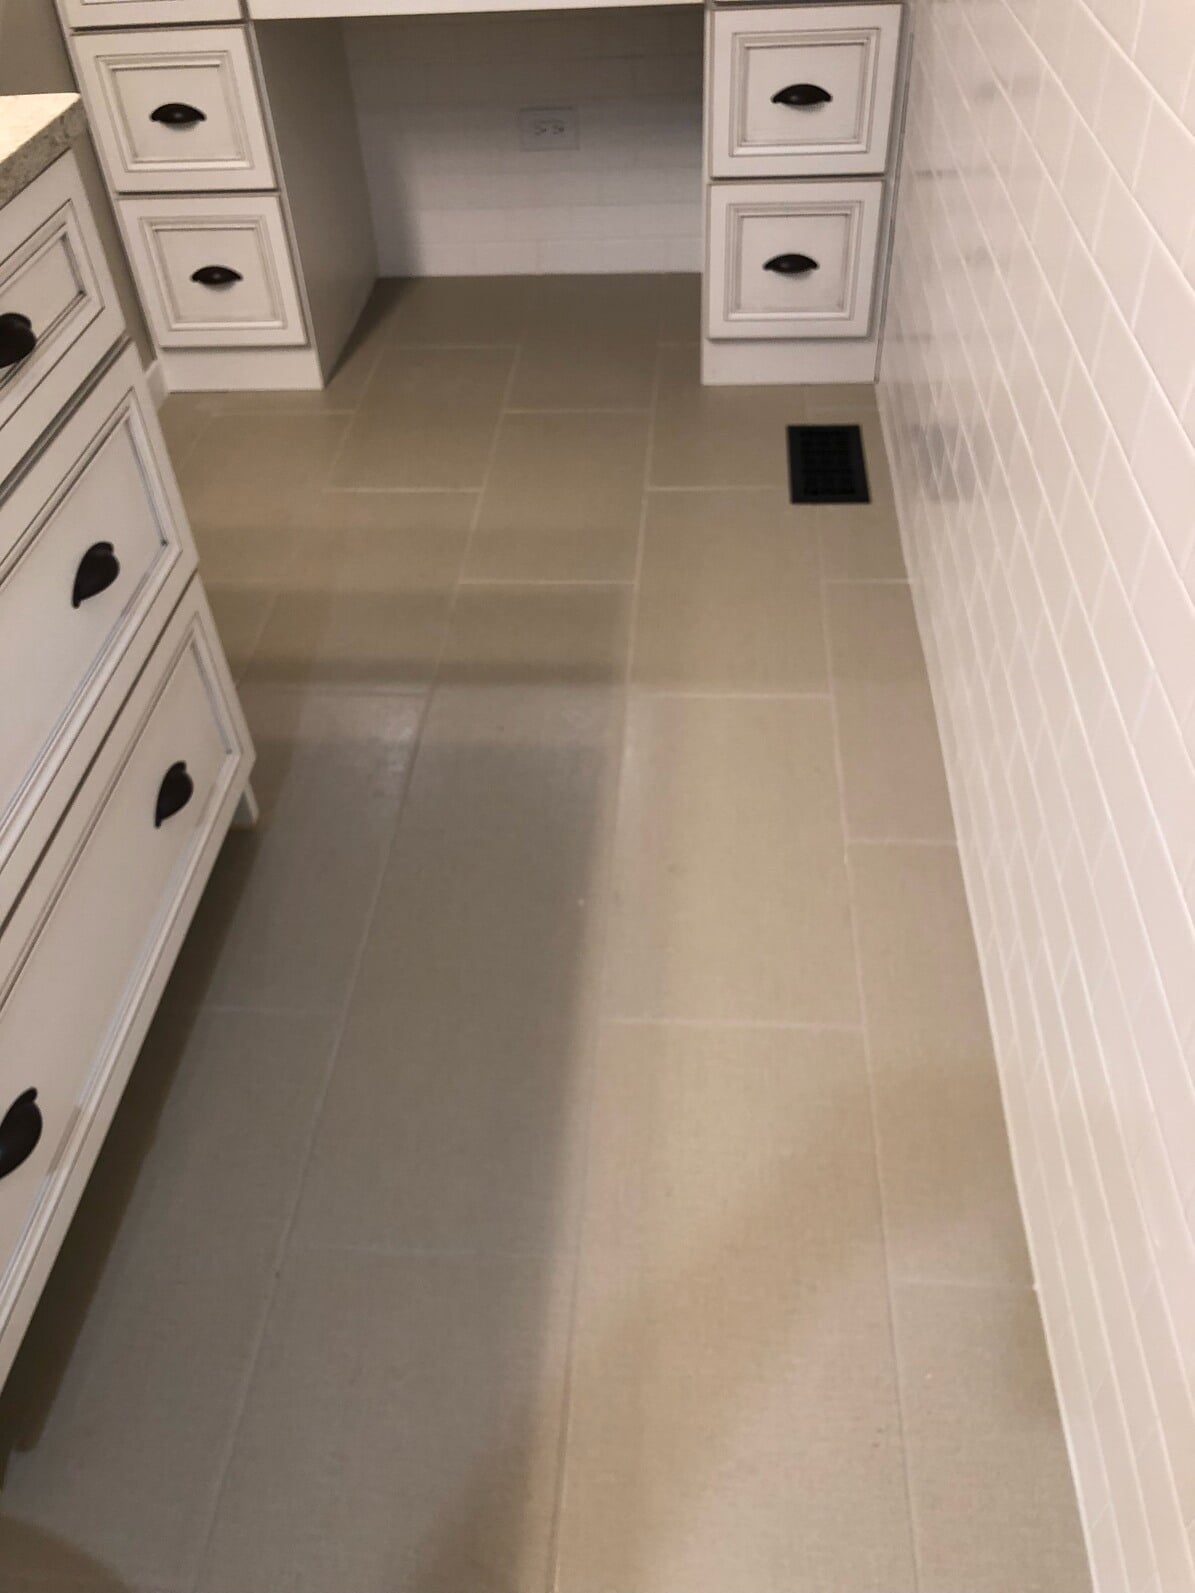 Clean tile flooring installation in Elwood, IL from Marchio Tile & Carpet Inc.